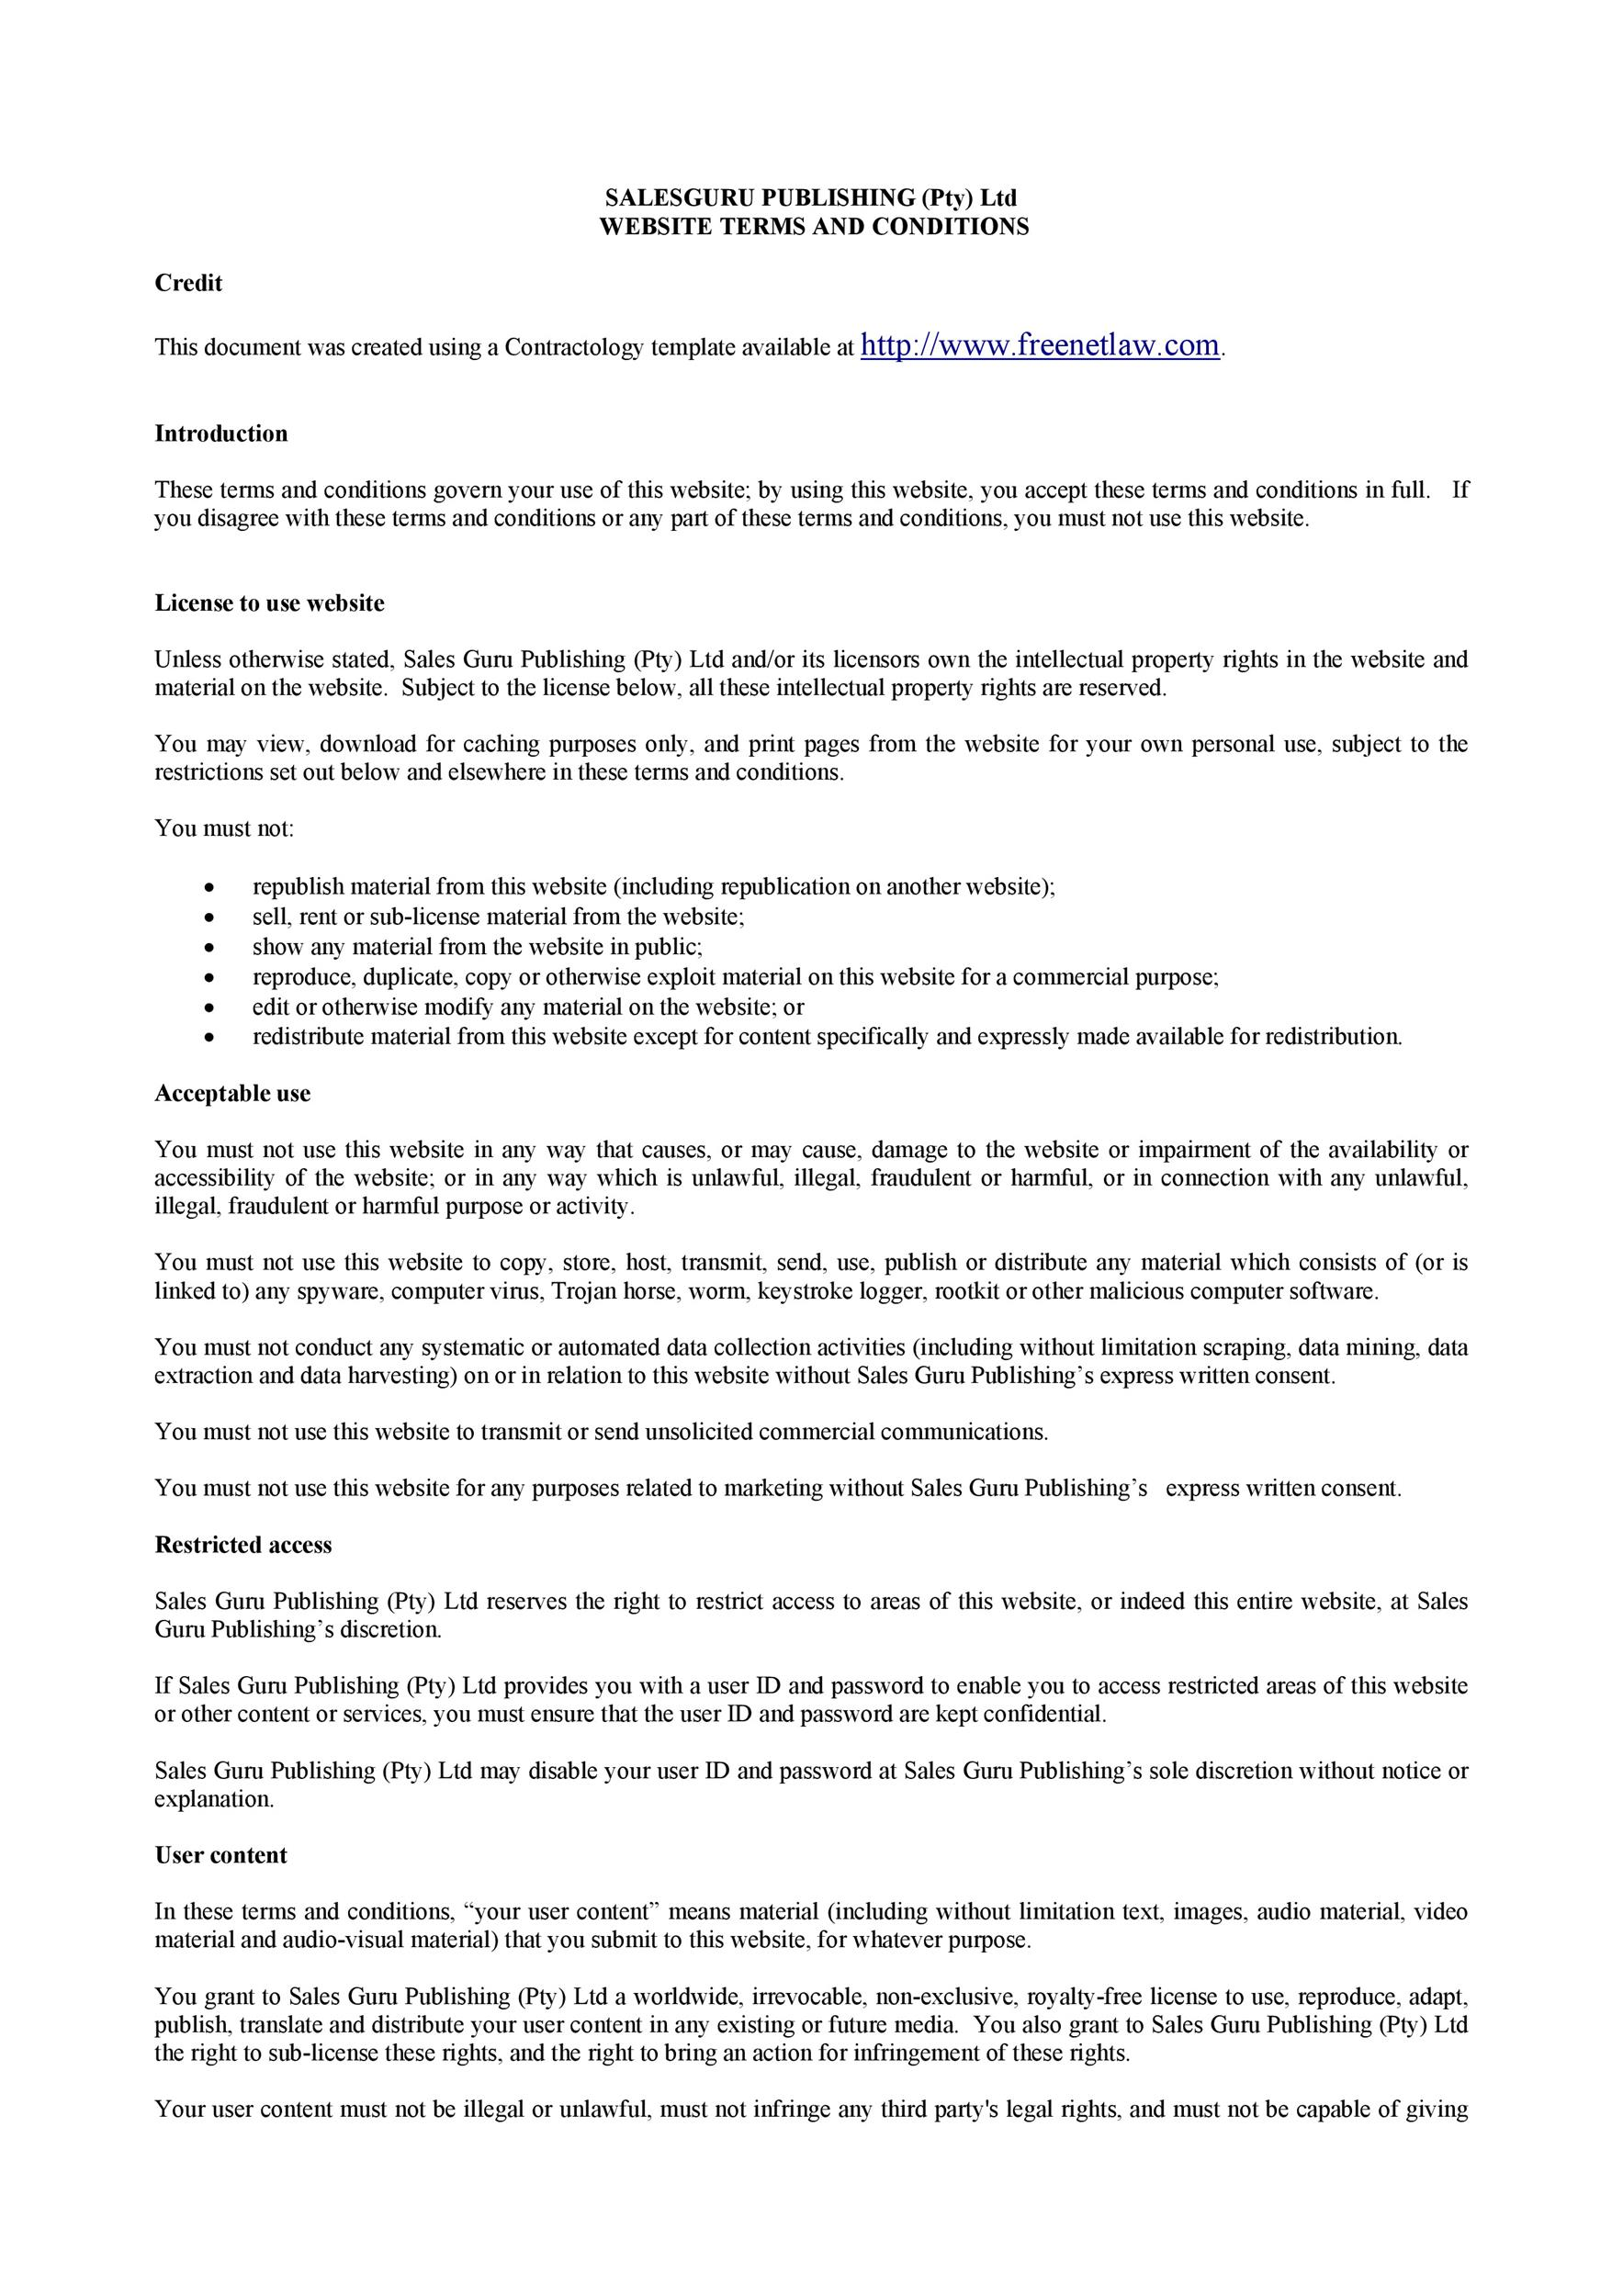 Free terms and conditions template 21